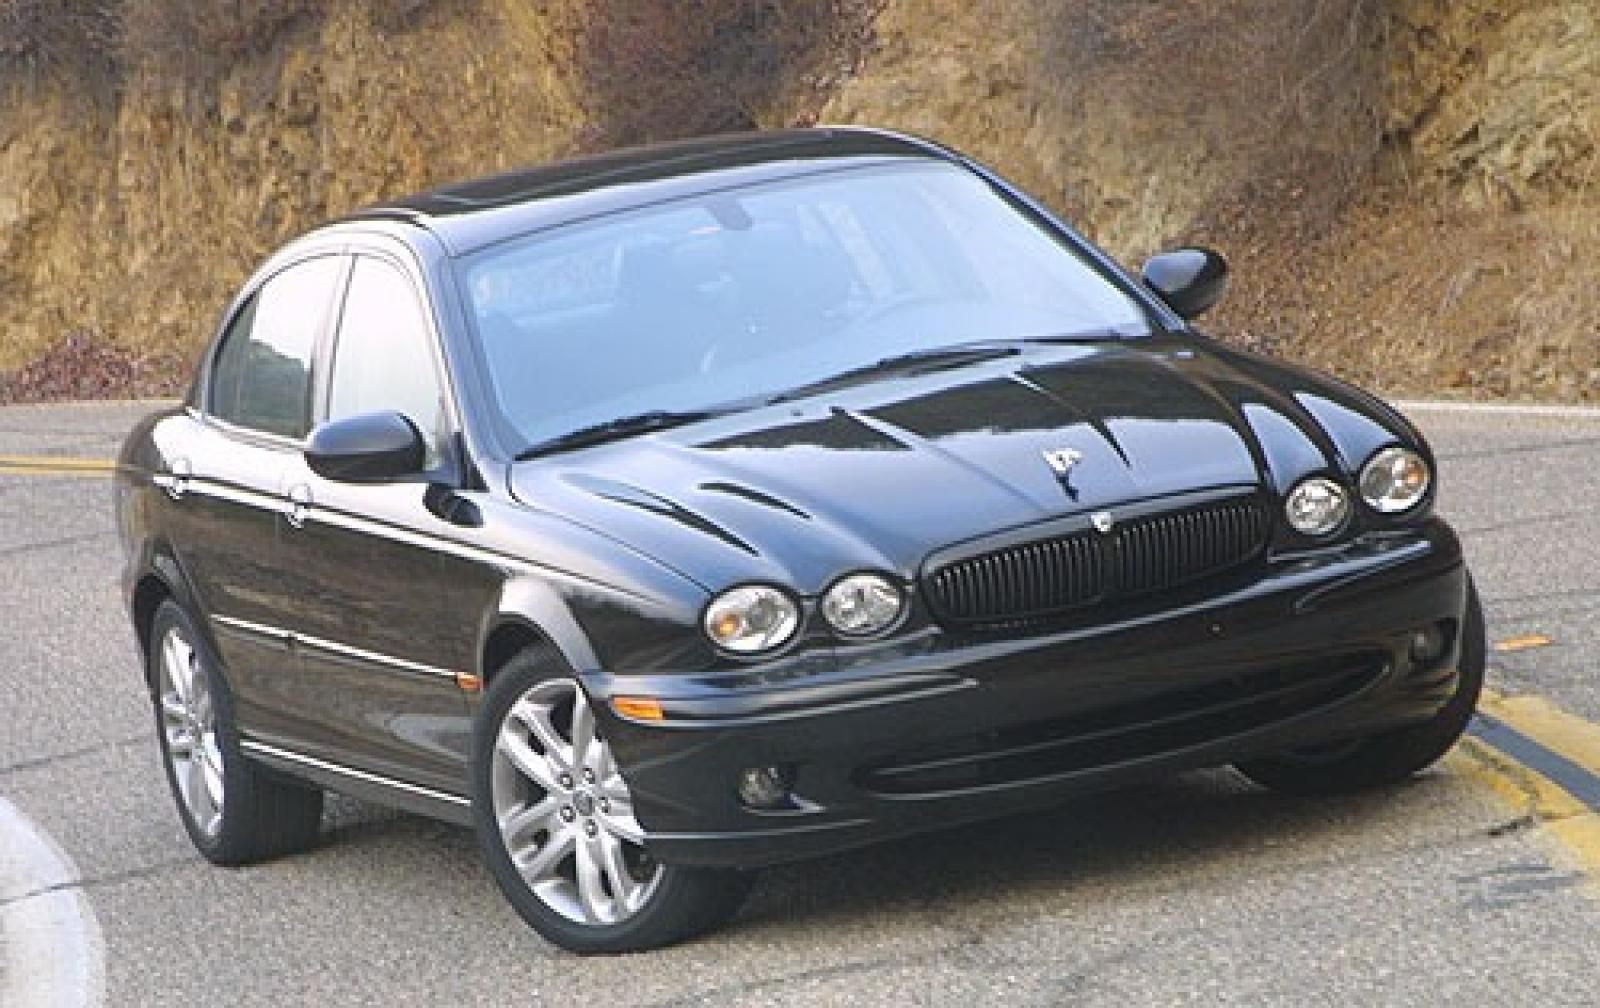 2003 jaguar x type information and photos zombiedrive. Black Bedroom Furniture Sets. Home Design Ideas